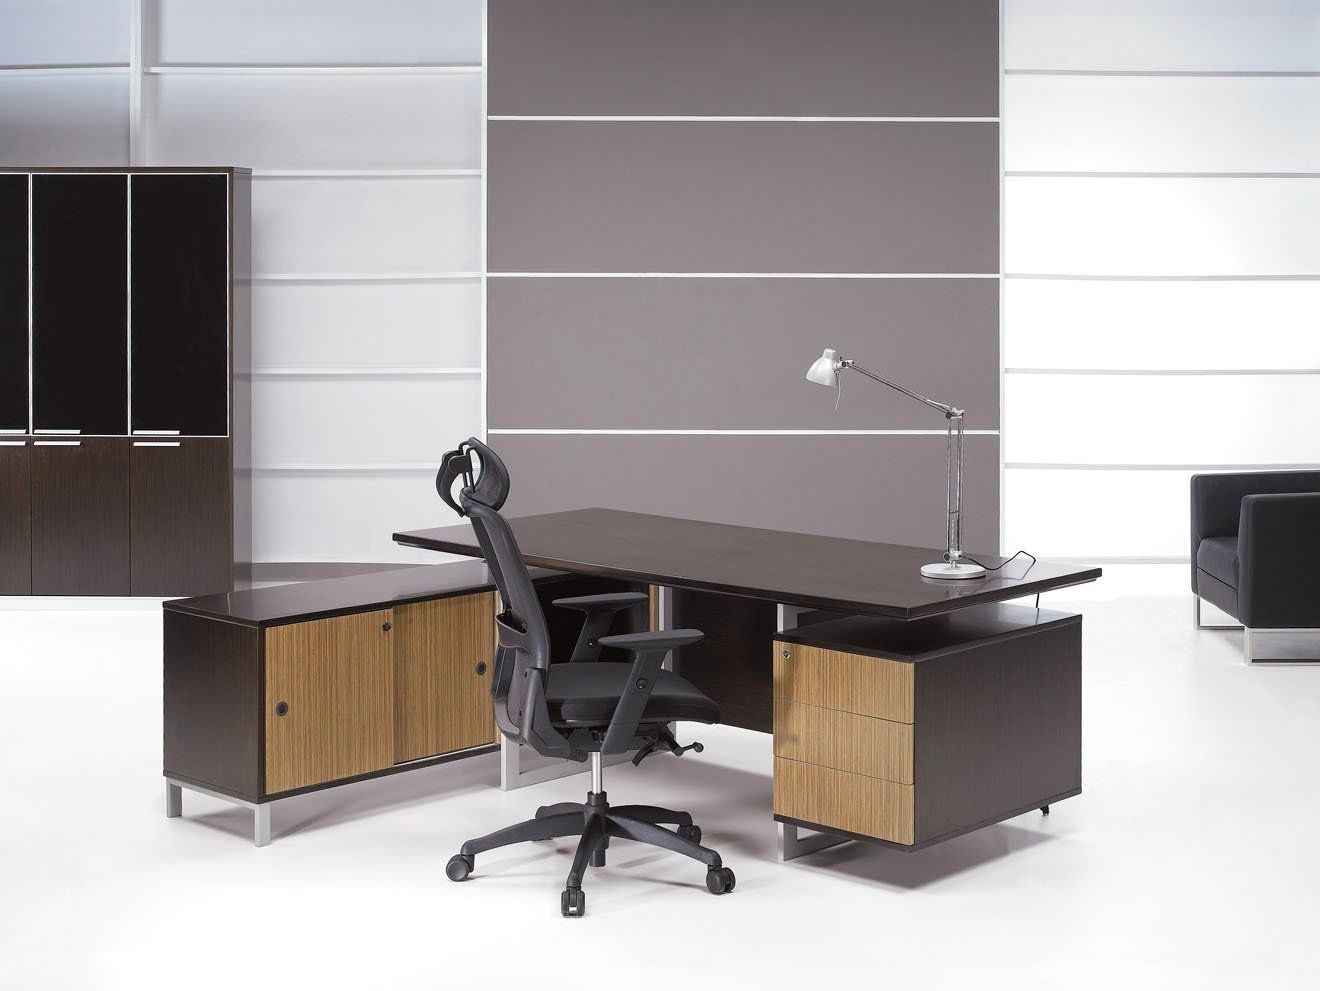 Modern Office L Desk Furniture with Storage Adding Executive Office Chair  and Light Lamp Table Also